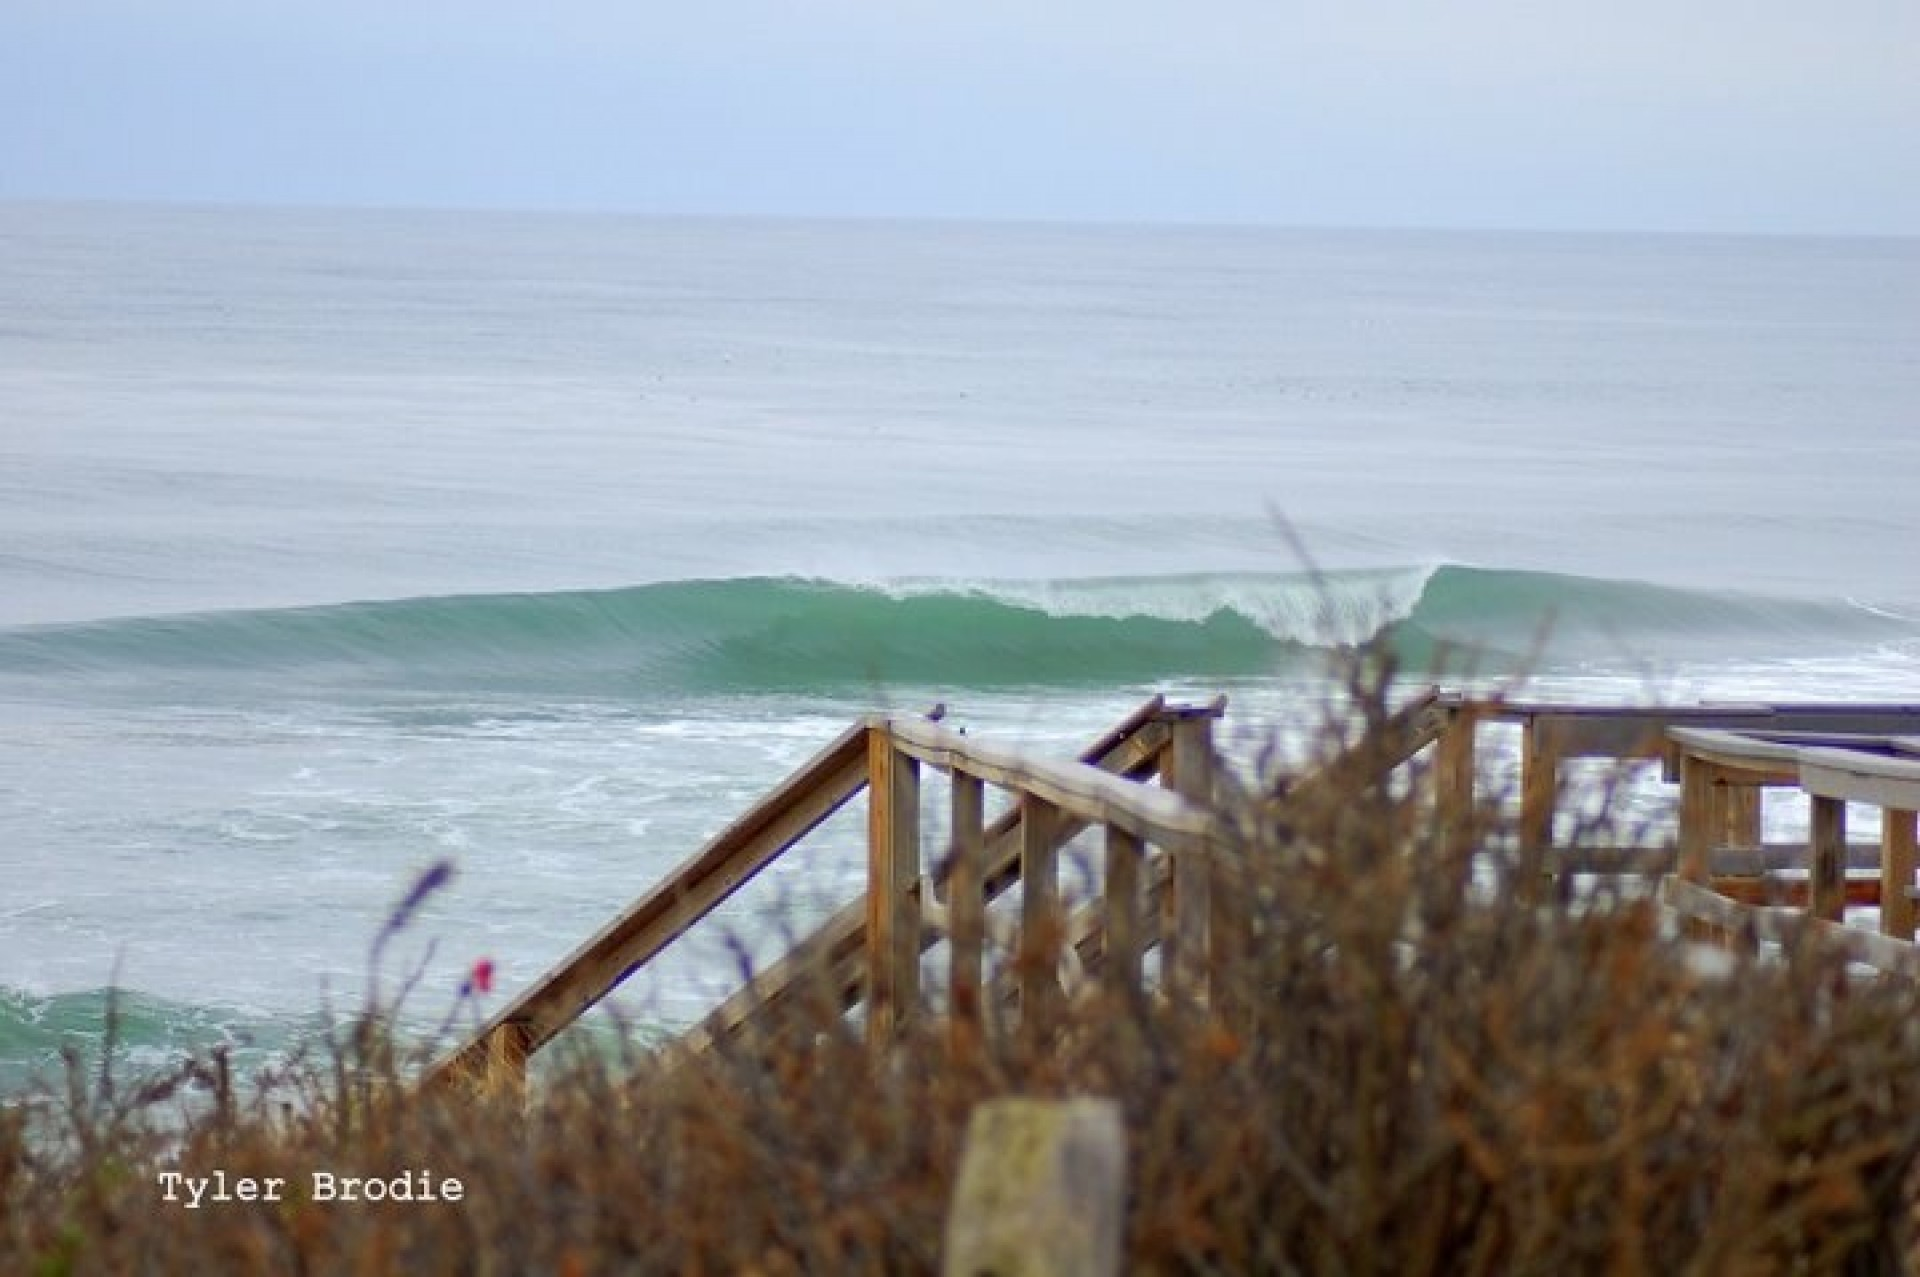 Tbrodes's photo of Cape Cod